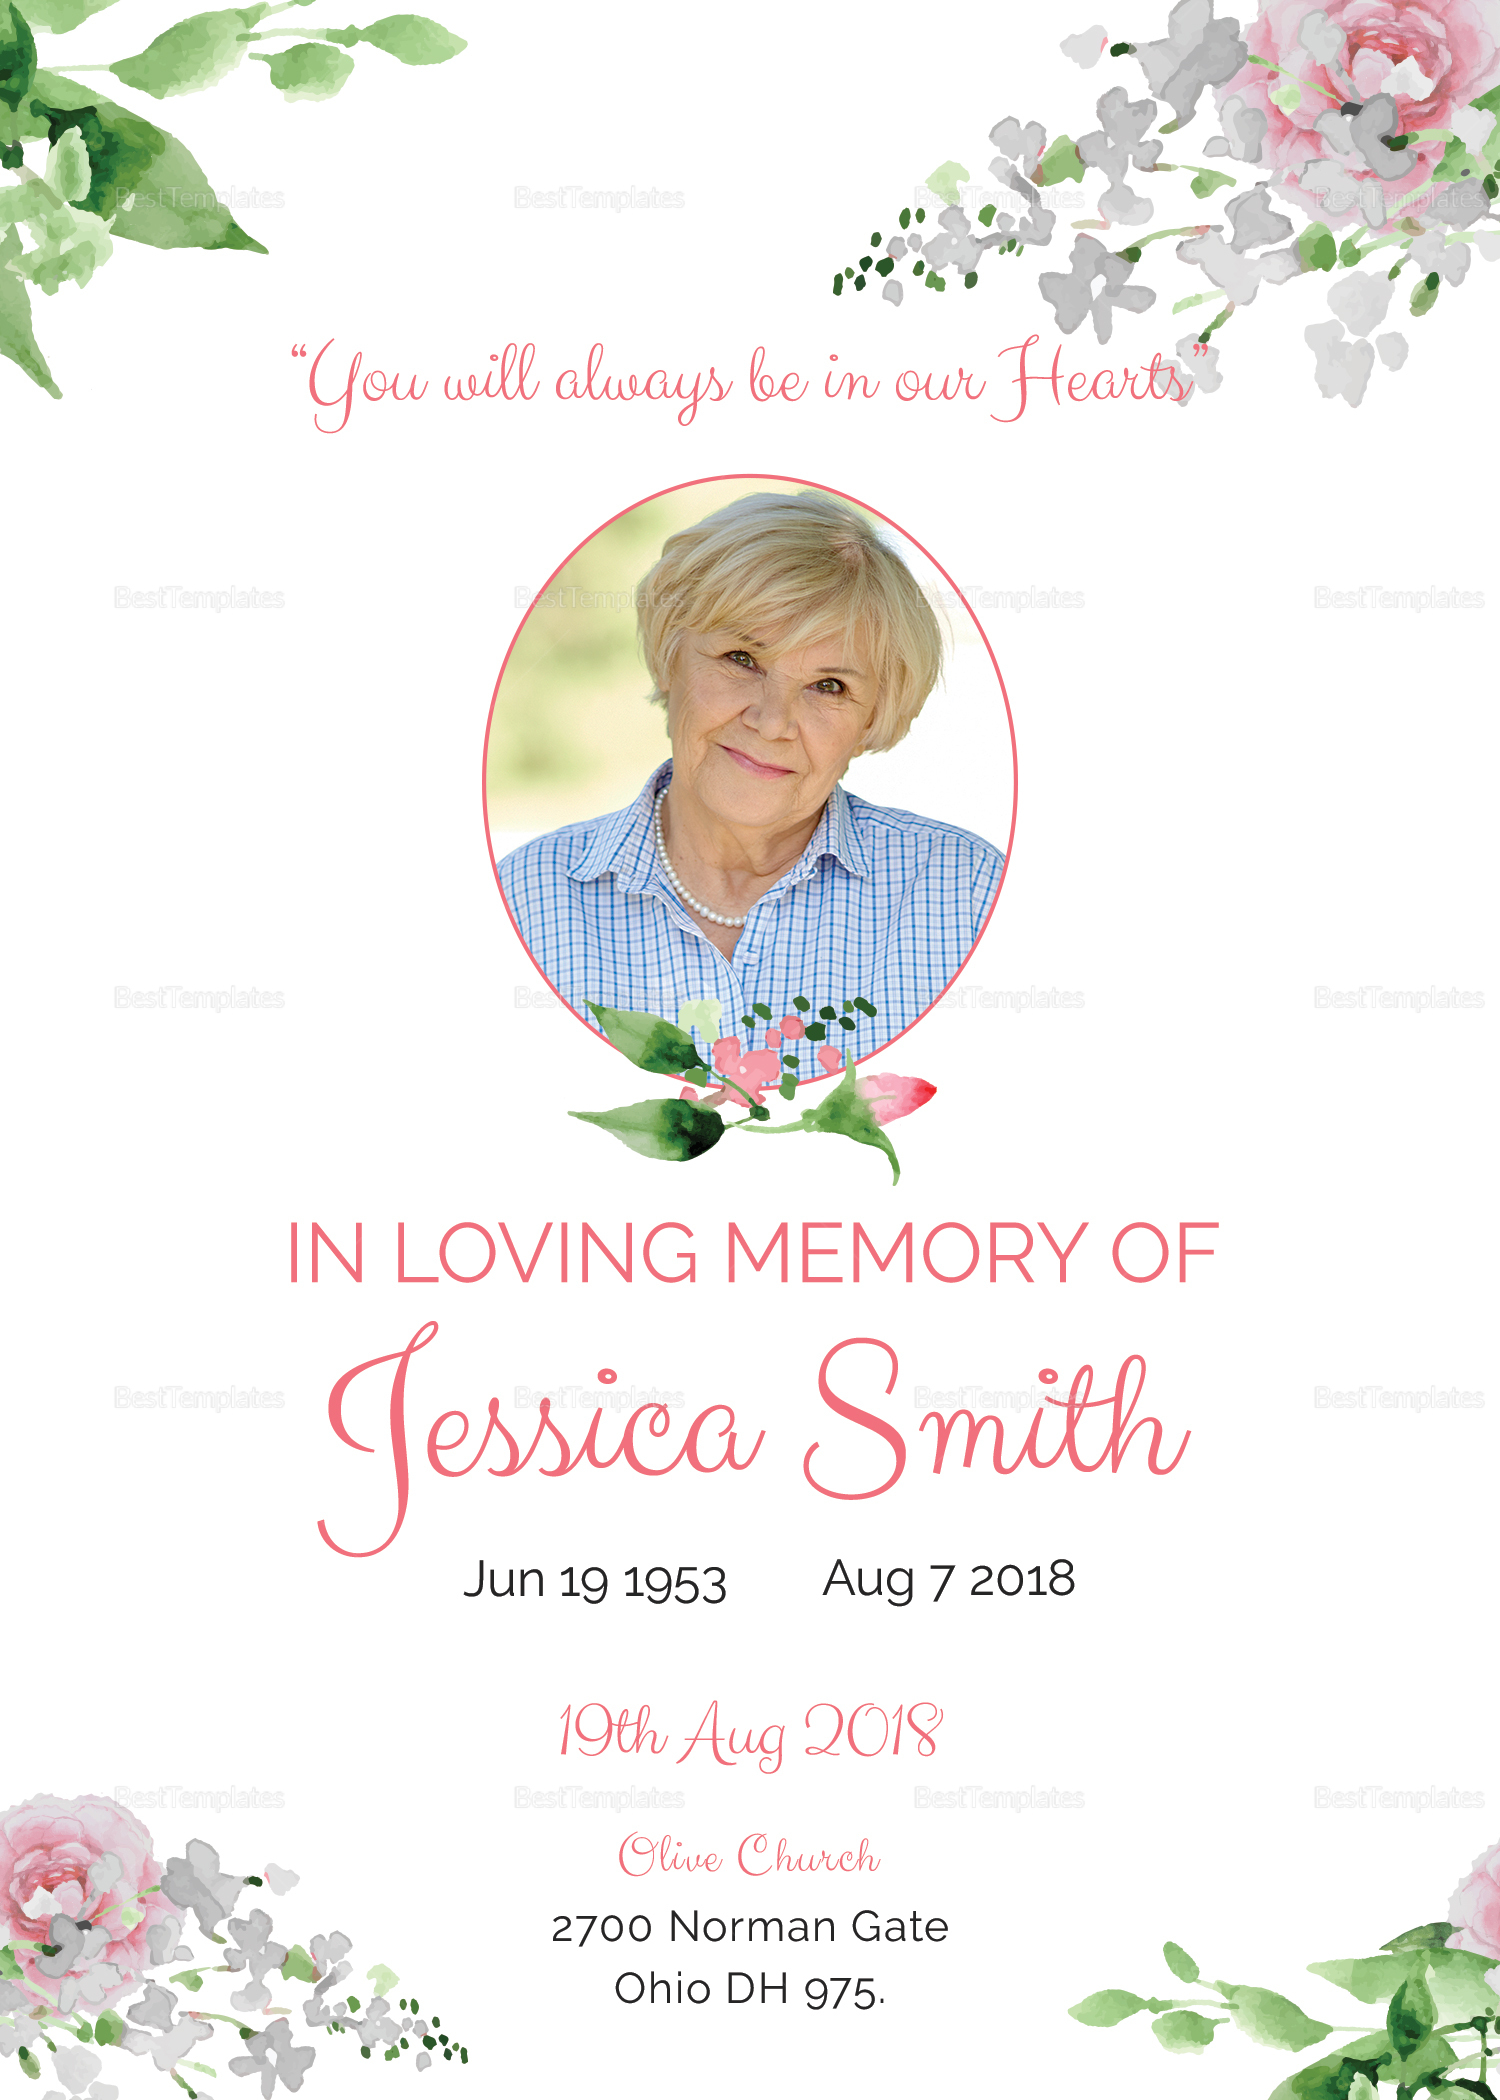 Funeral Program Invitation Design